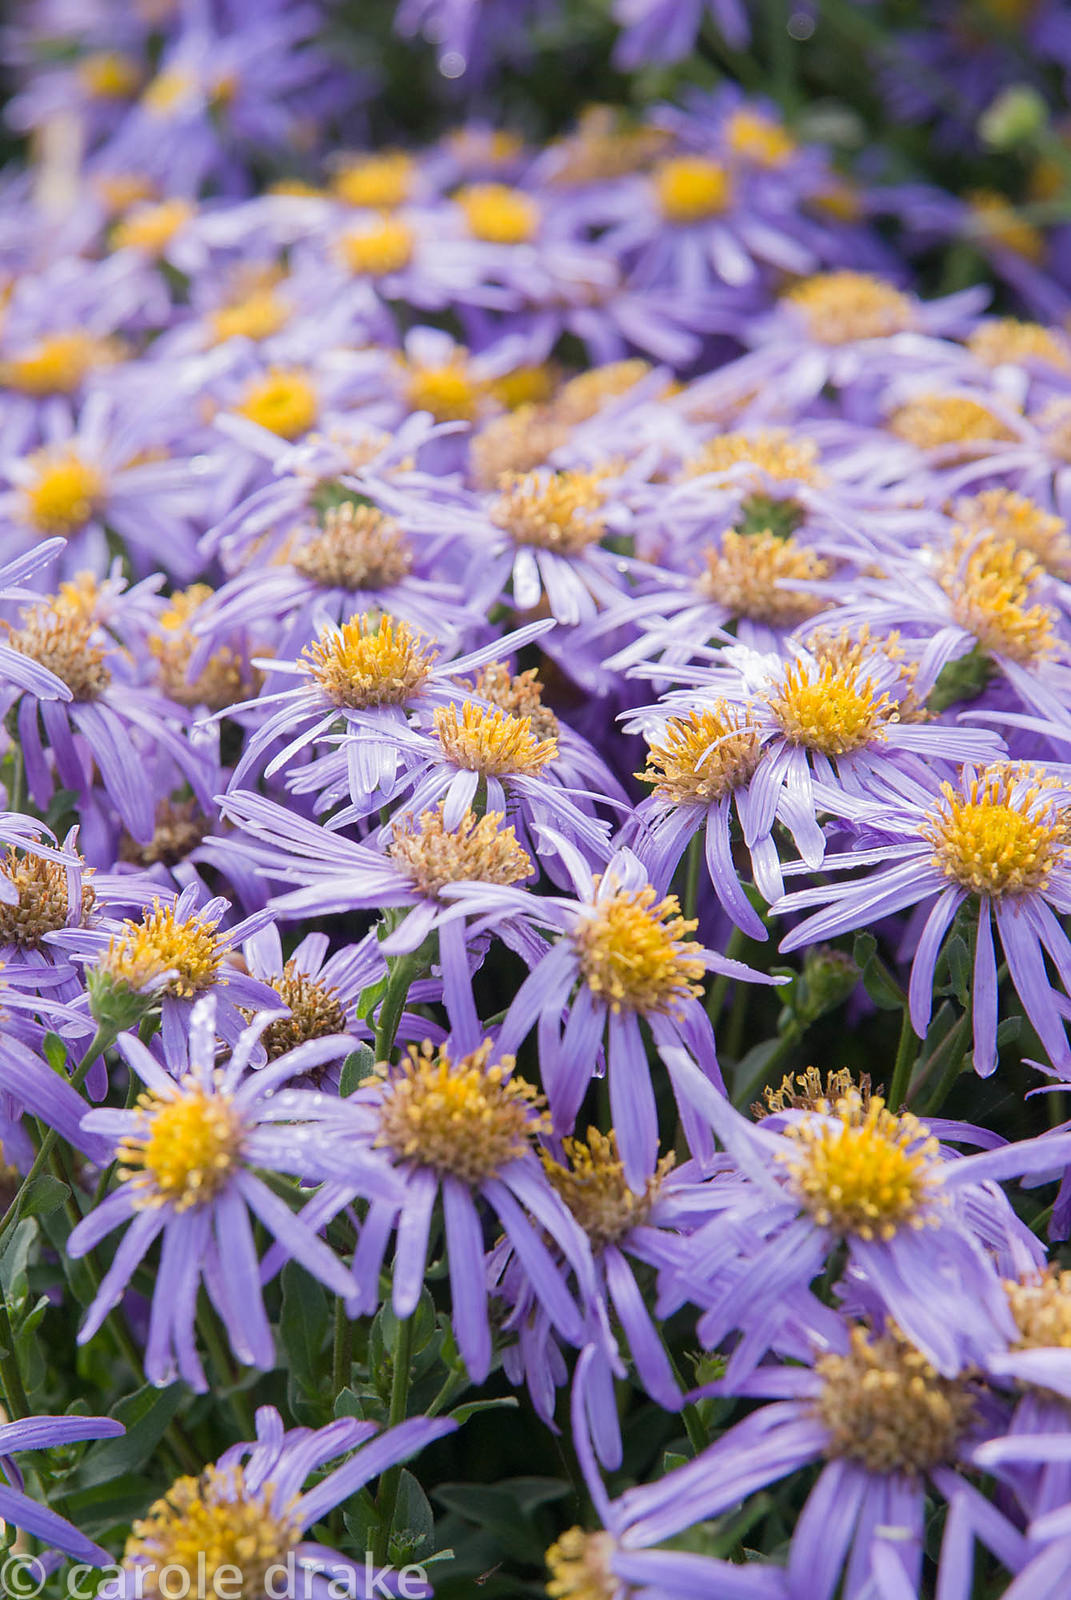 Aster amellus 'King George', AGM. Waterperry Gardens, Wheatley, Oxfordshire, UK